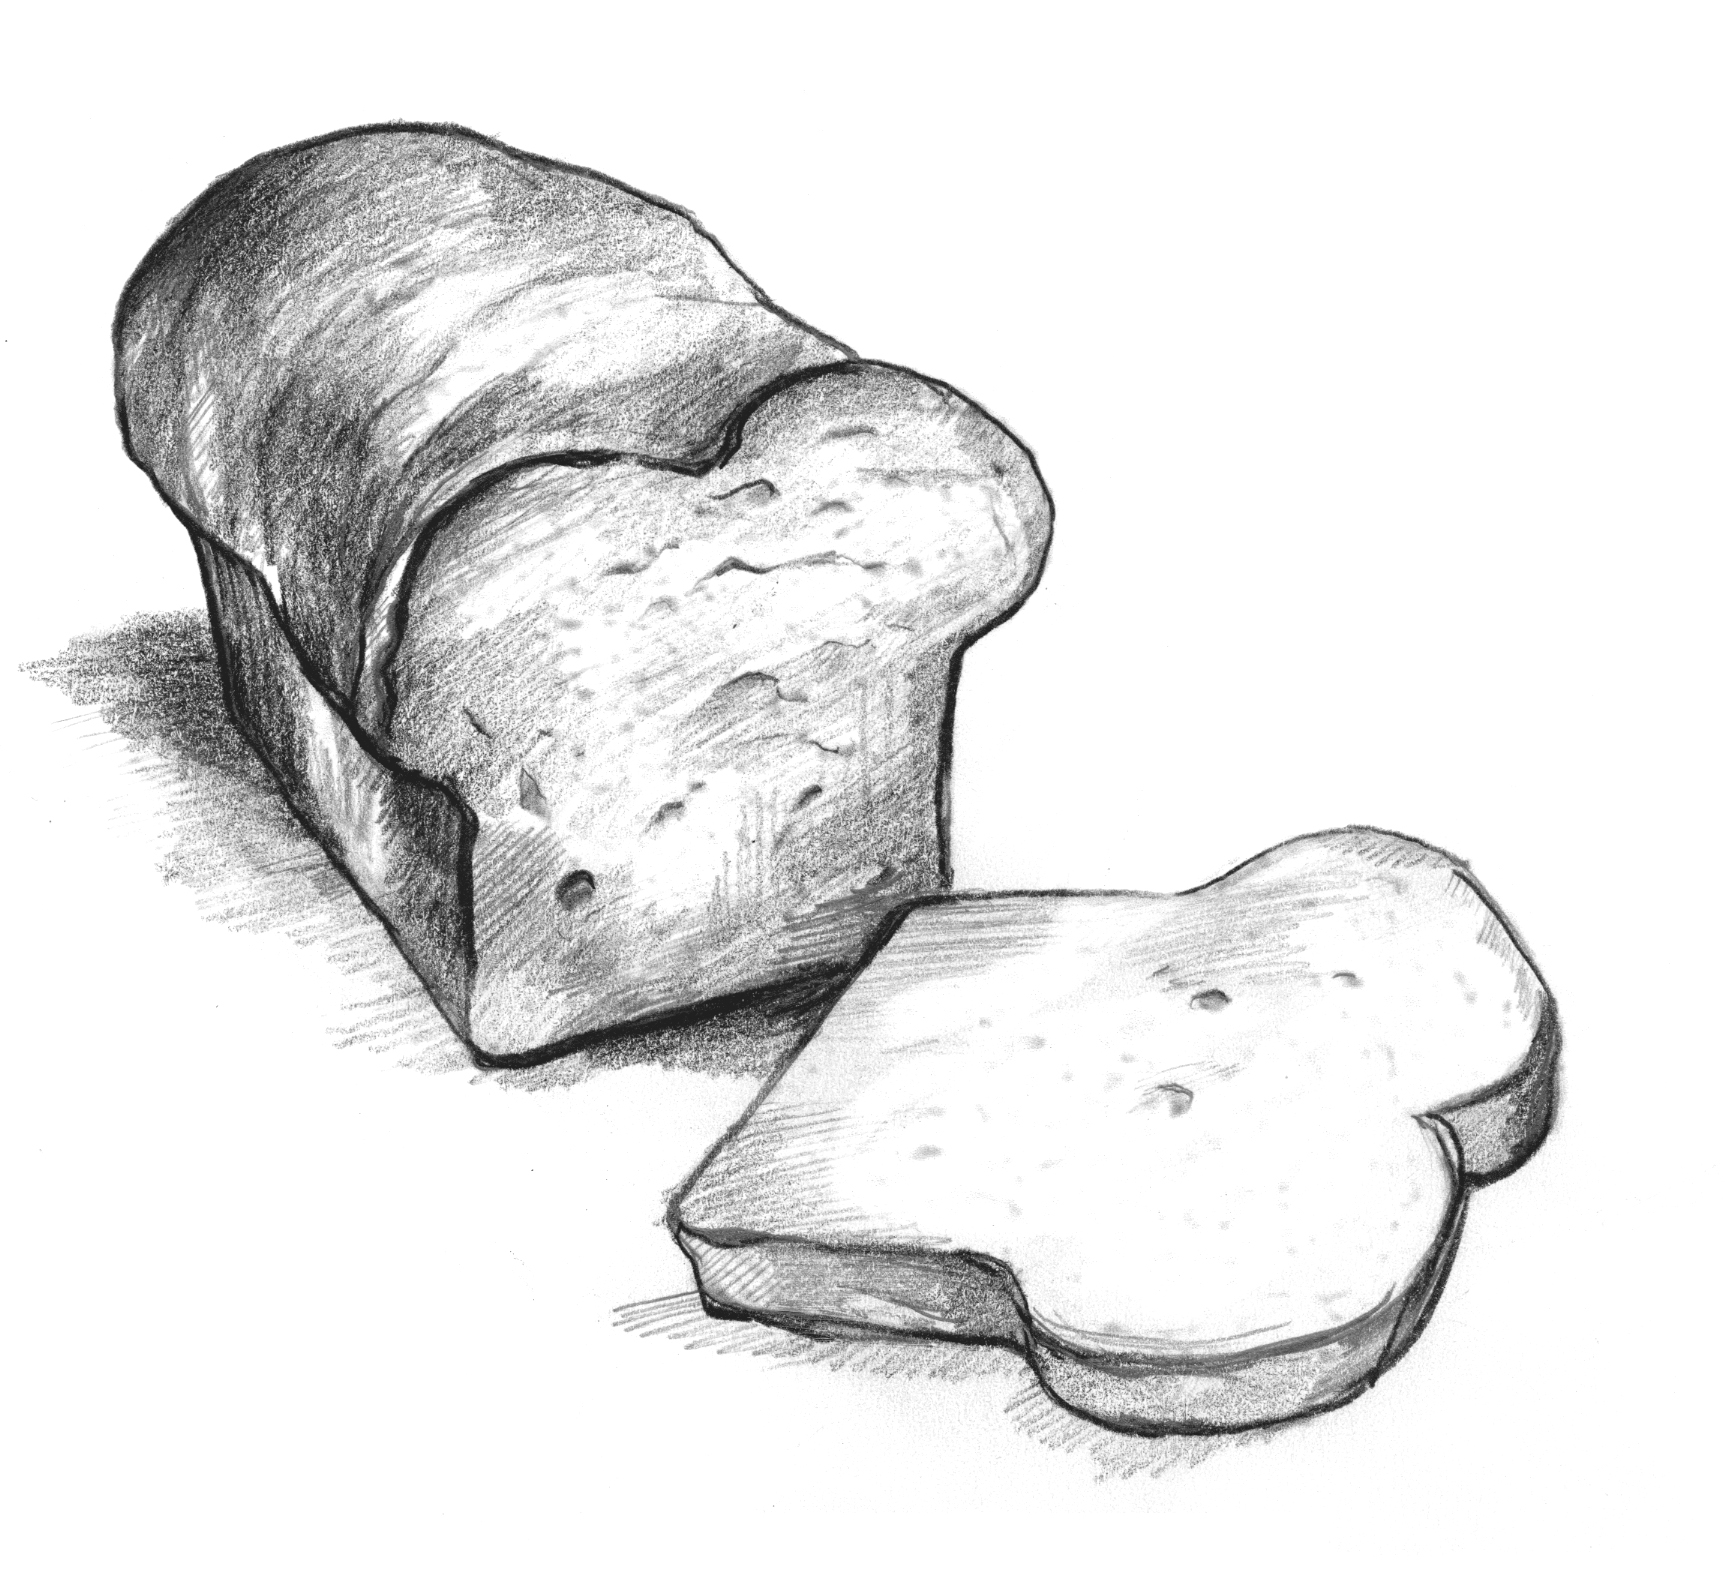 Drawn bread loaf bread Archived: Library No NIDDK Image